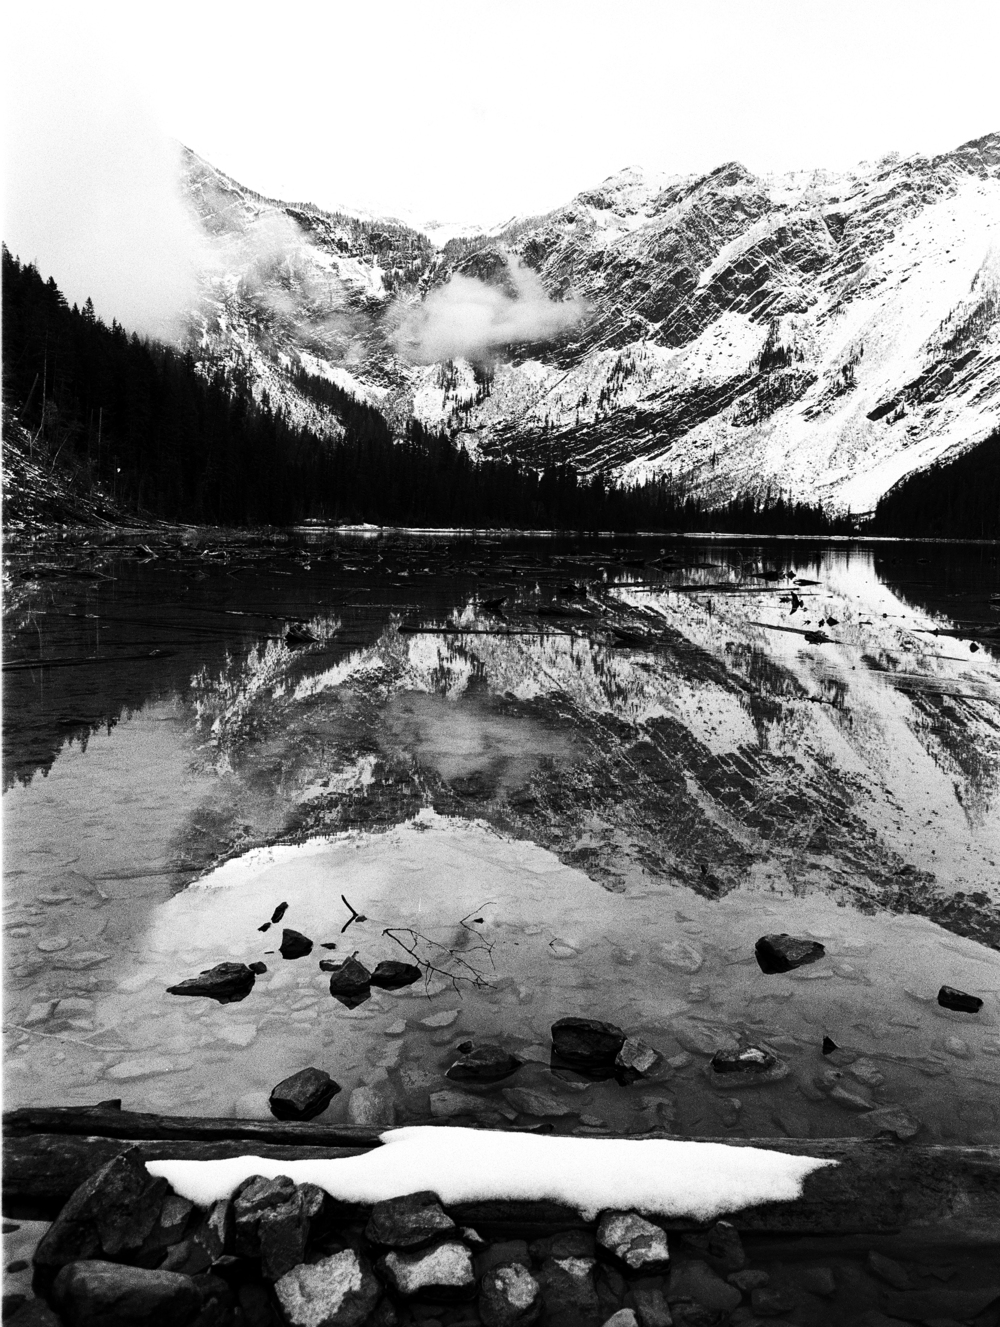 AVALANCHE LAKE - MONTANA - 2010